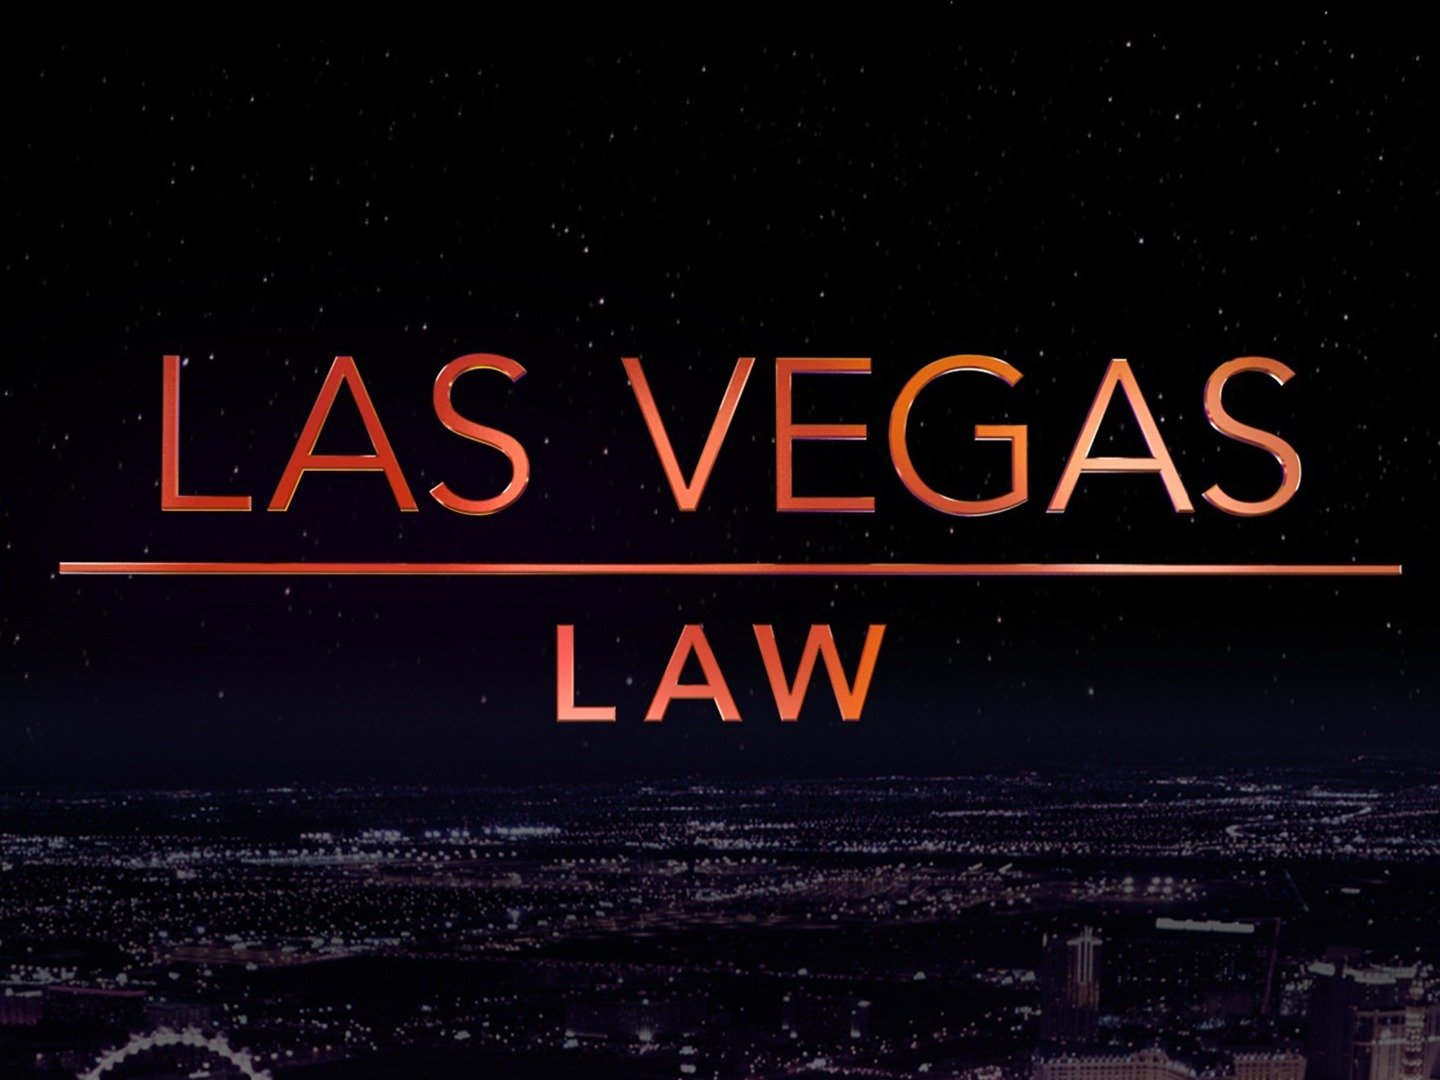 las vegas law season two renewal for id docuseries canceled tv shows tv series finale. Black Bedroom Furniture Sets. Home Design Ideas